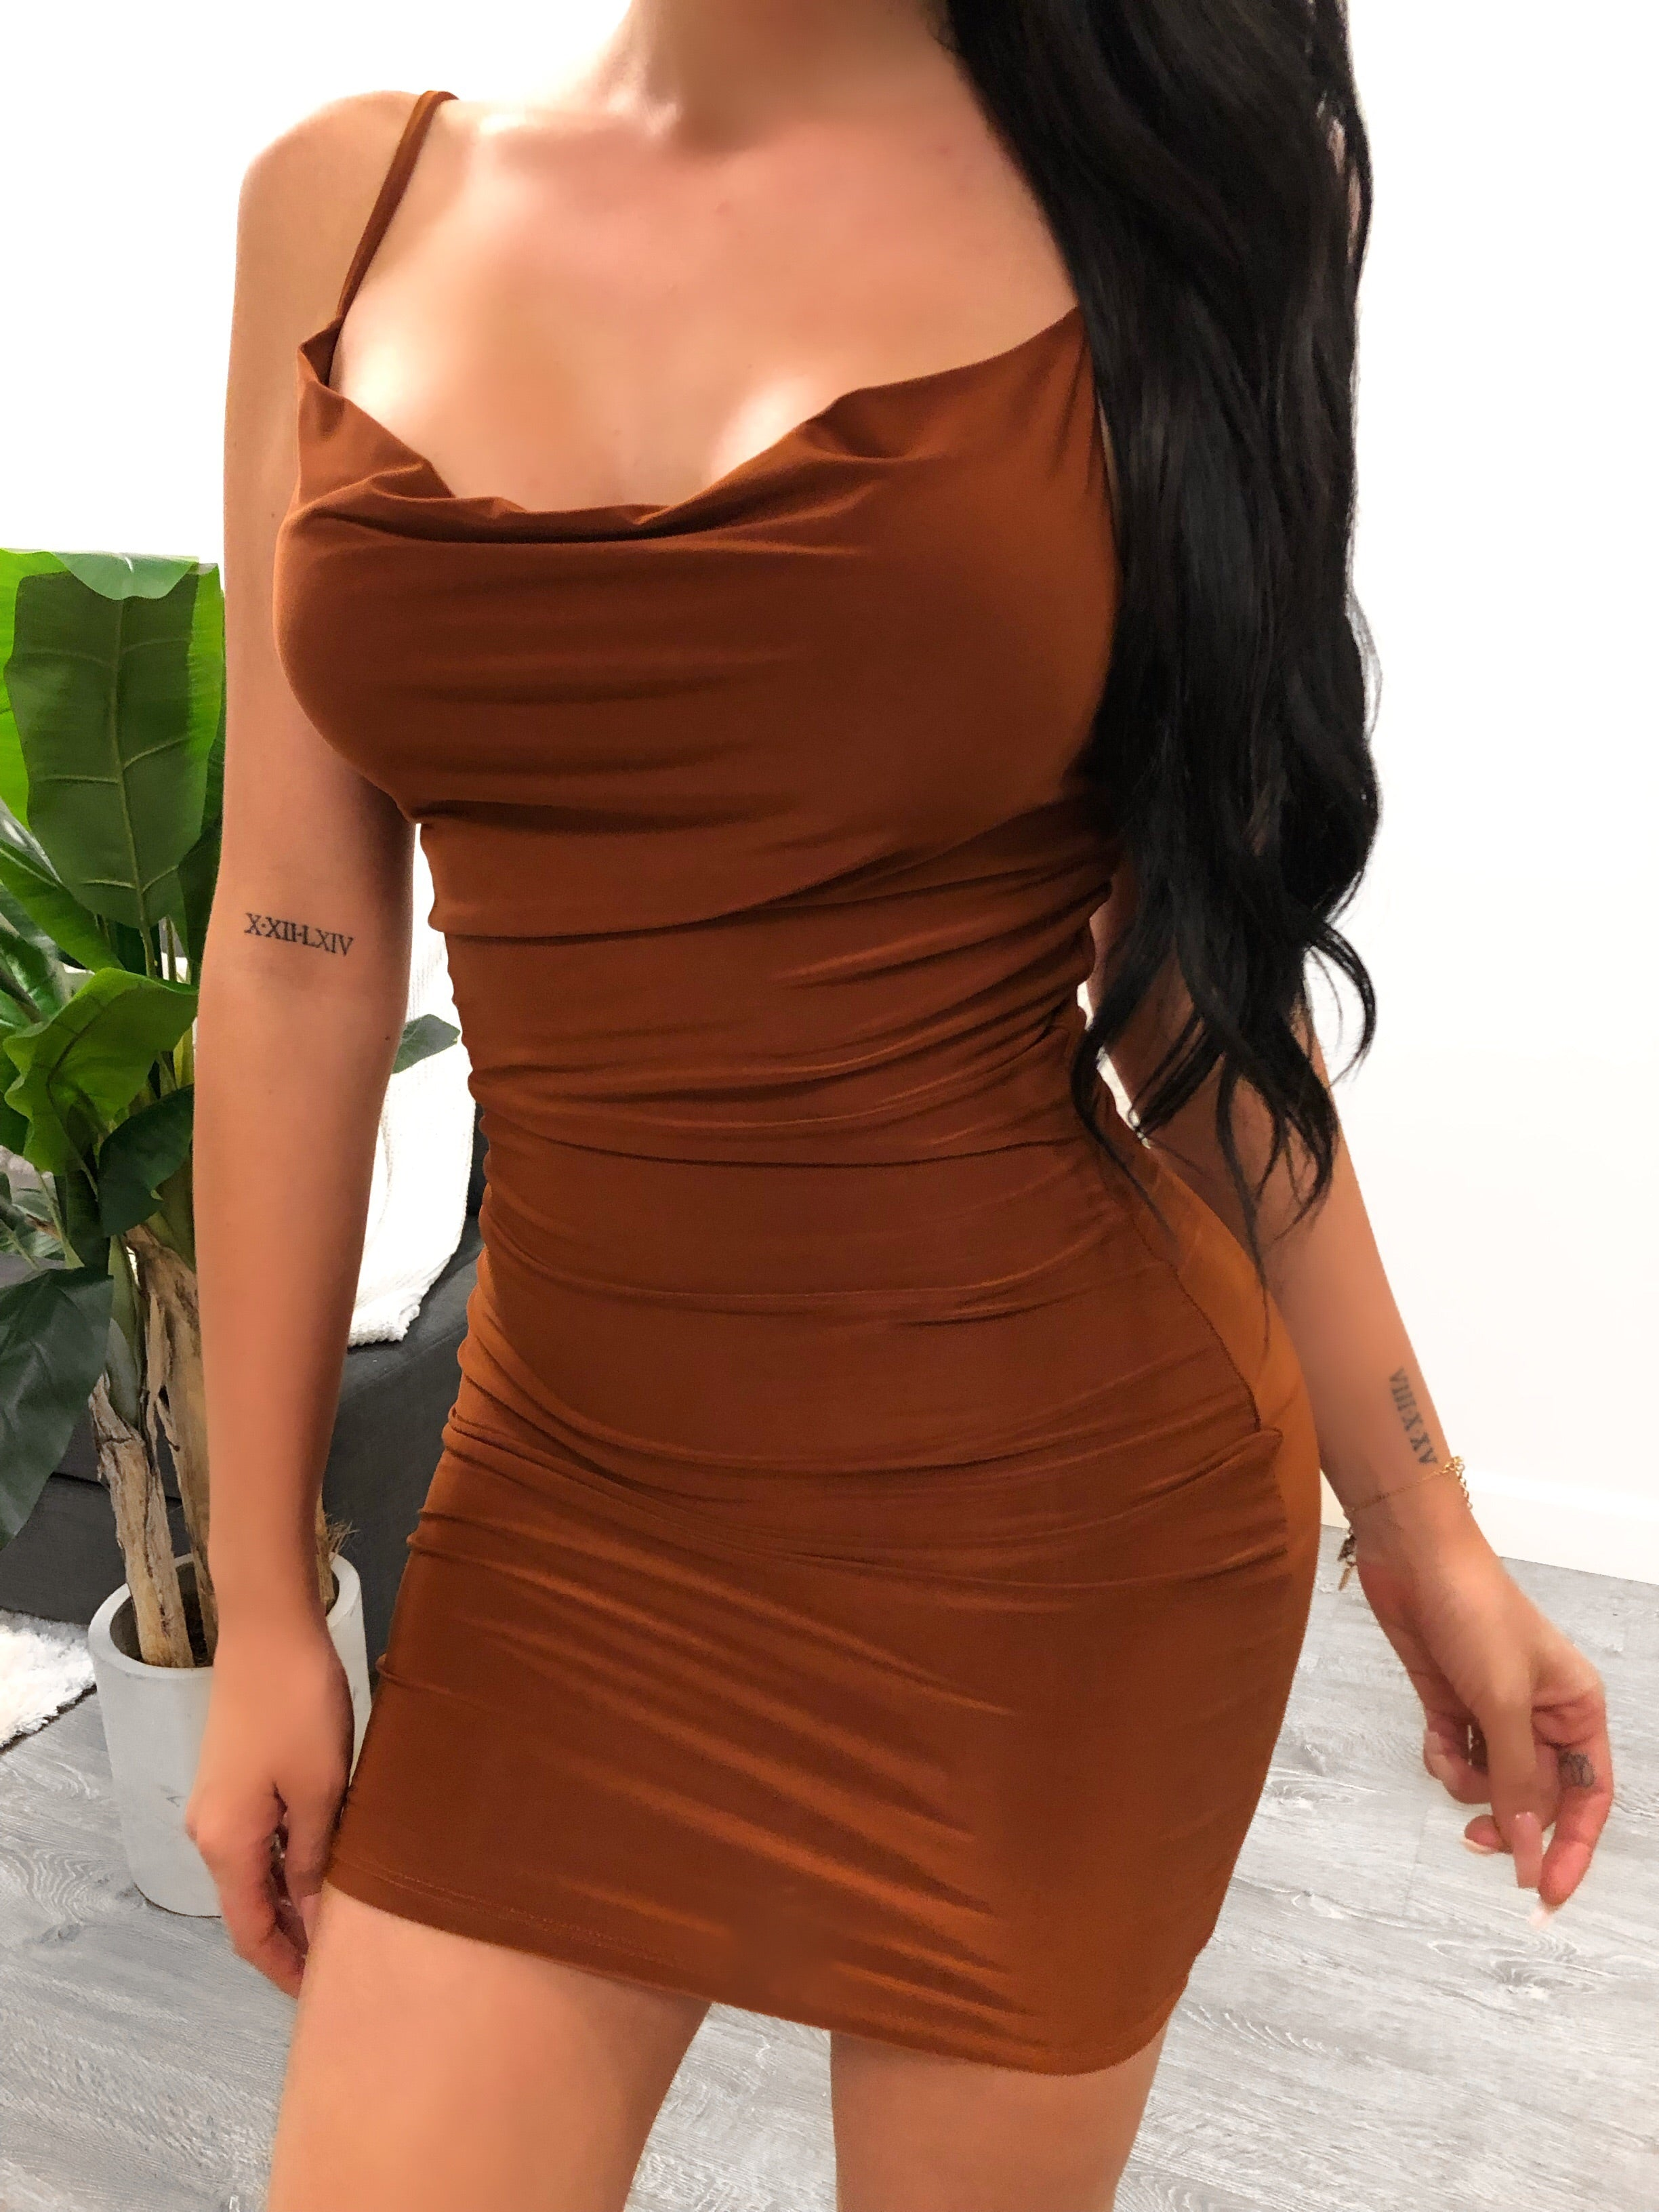 cognac color spaghetti strap skin tight dress, neck line is loose fit, showing mid cleavage, dress ends mid thigh